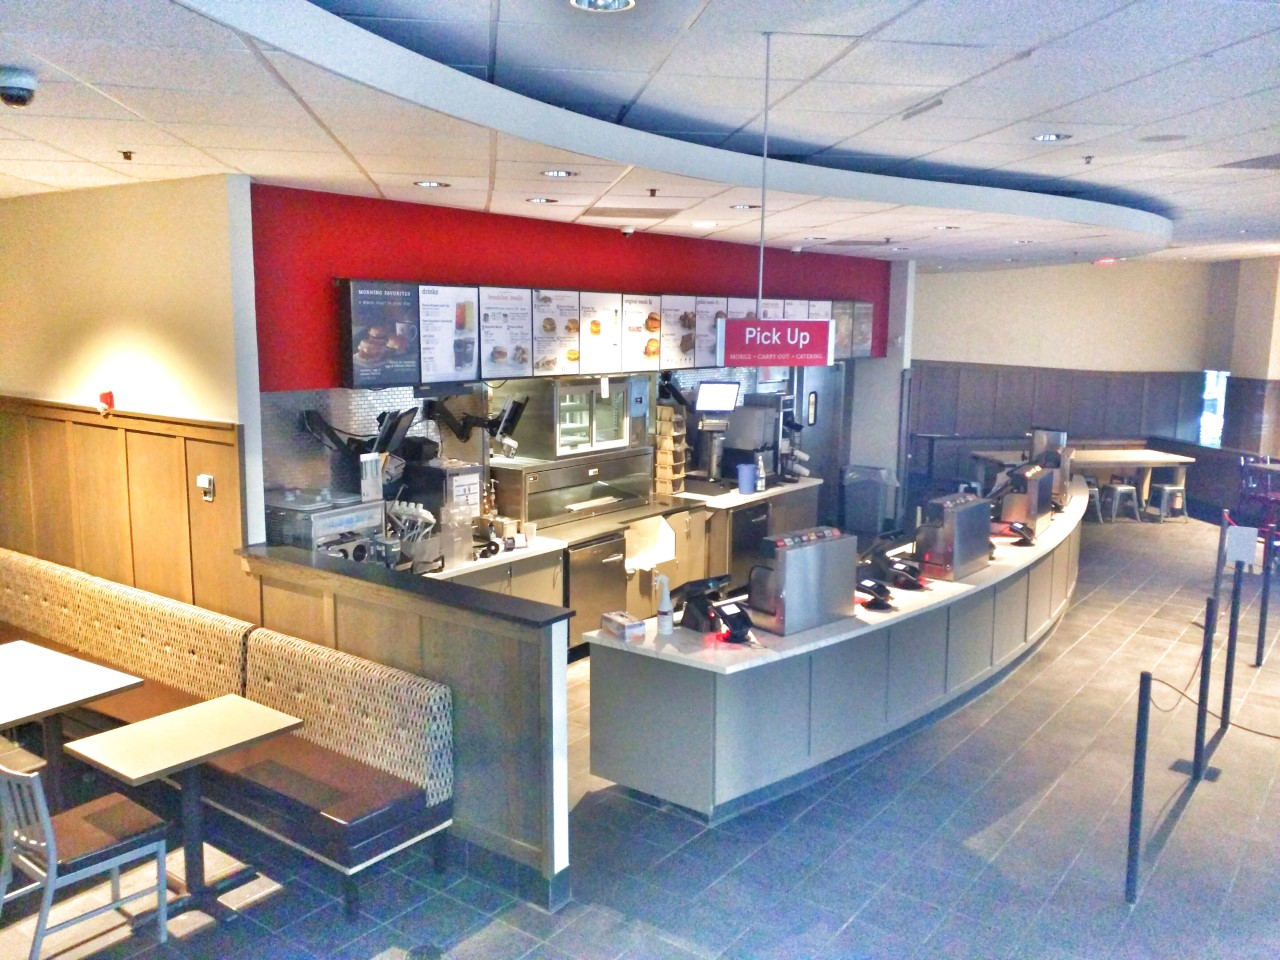 east moco: chick-fil-a makeover complete in silver spring (photos)